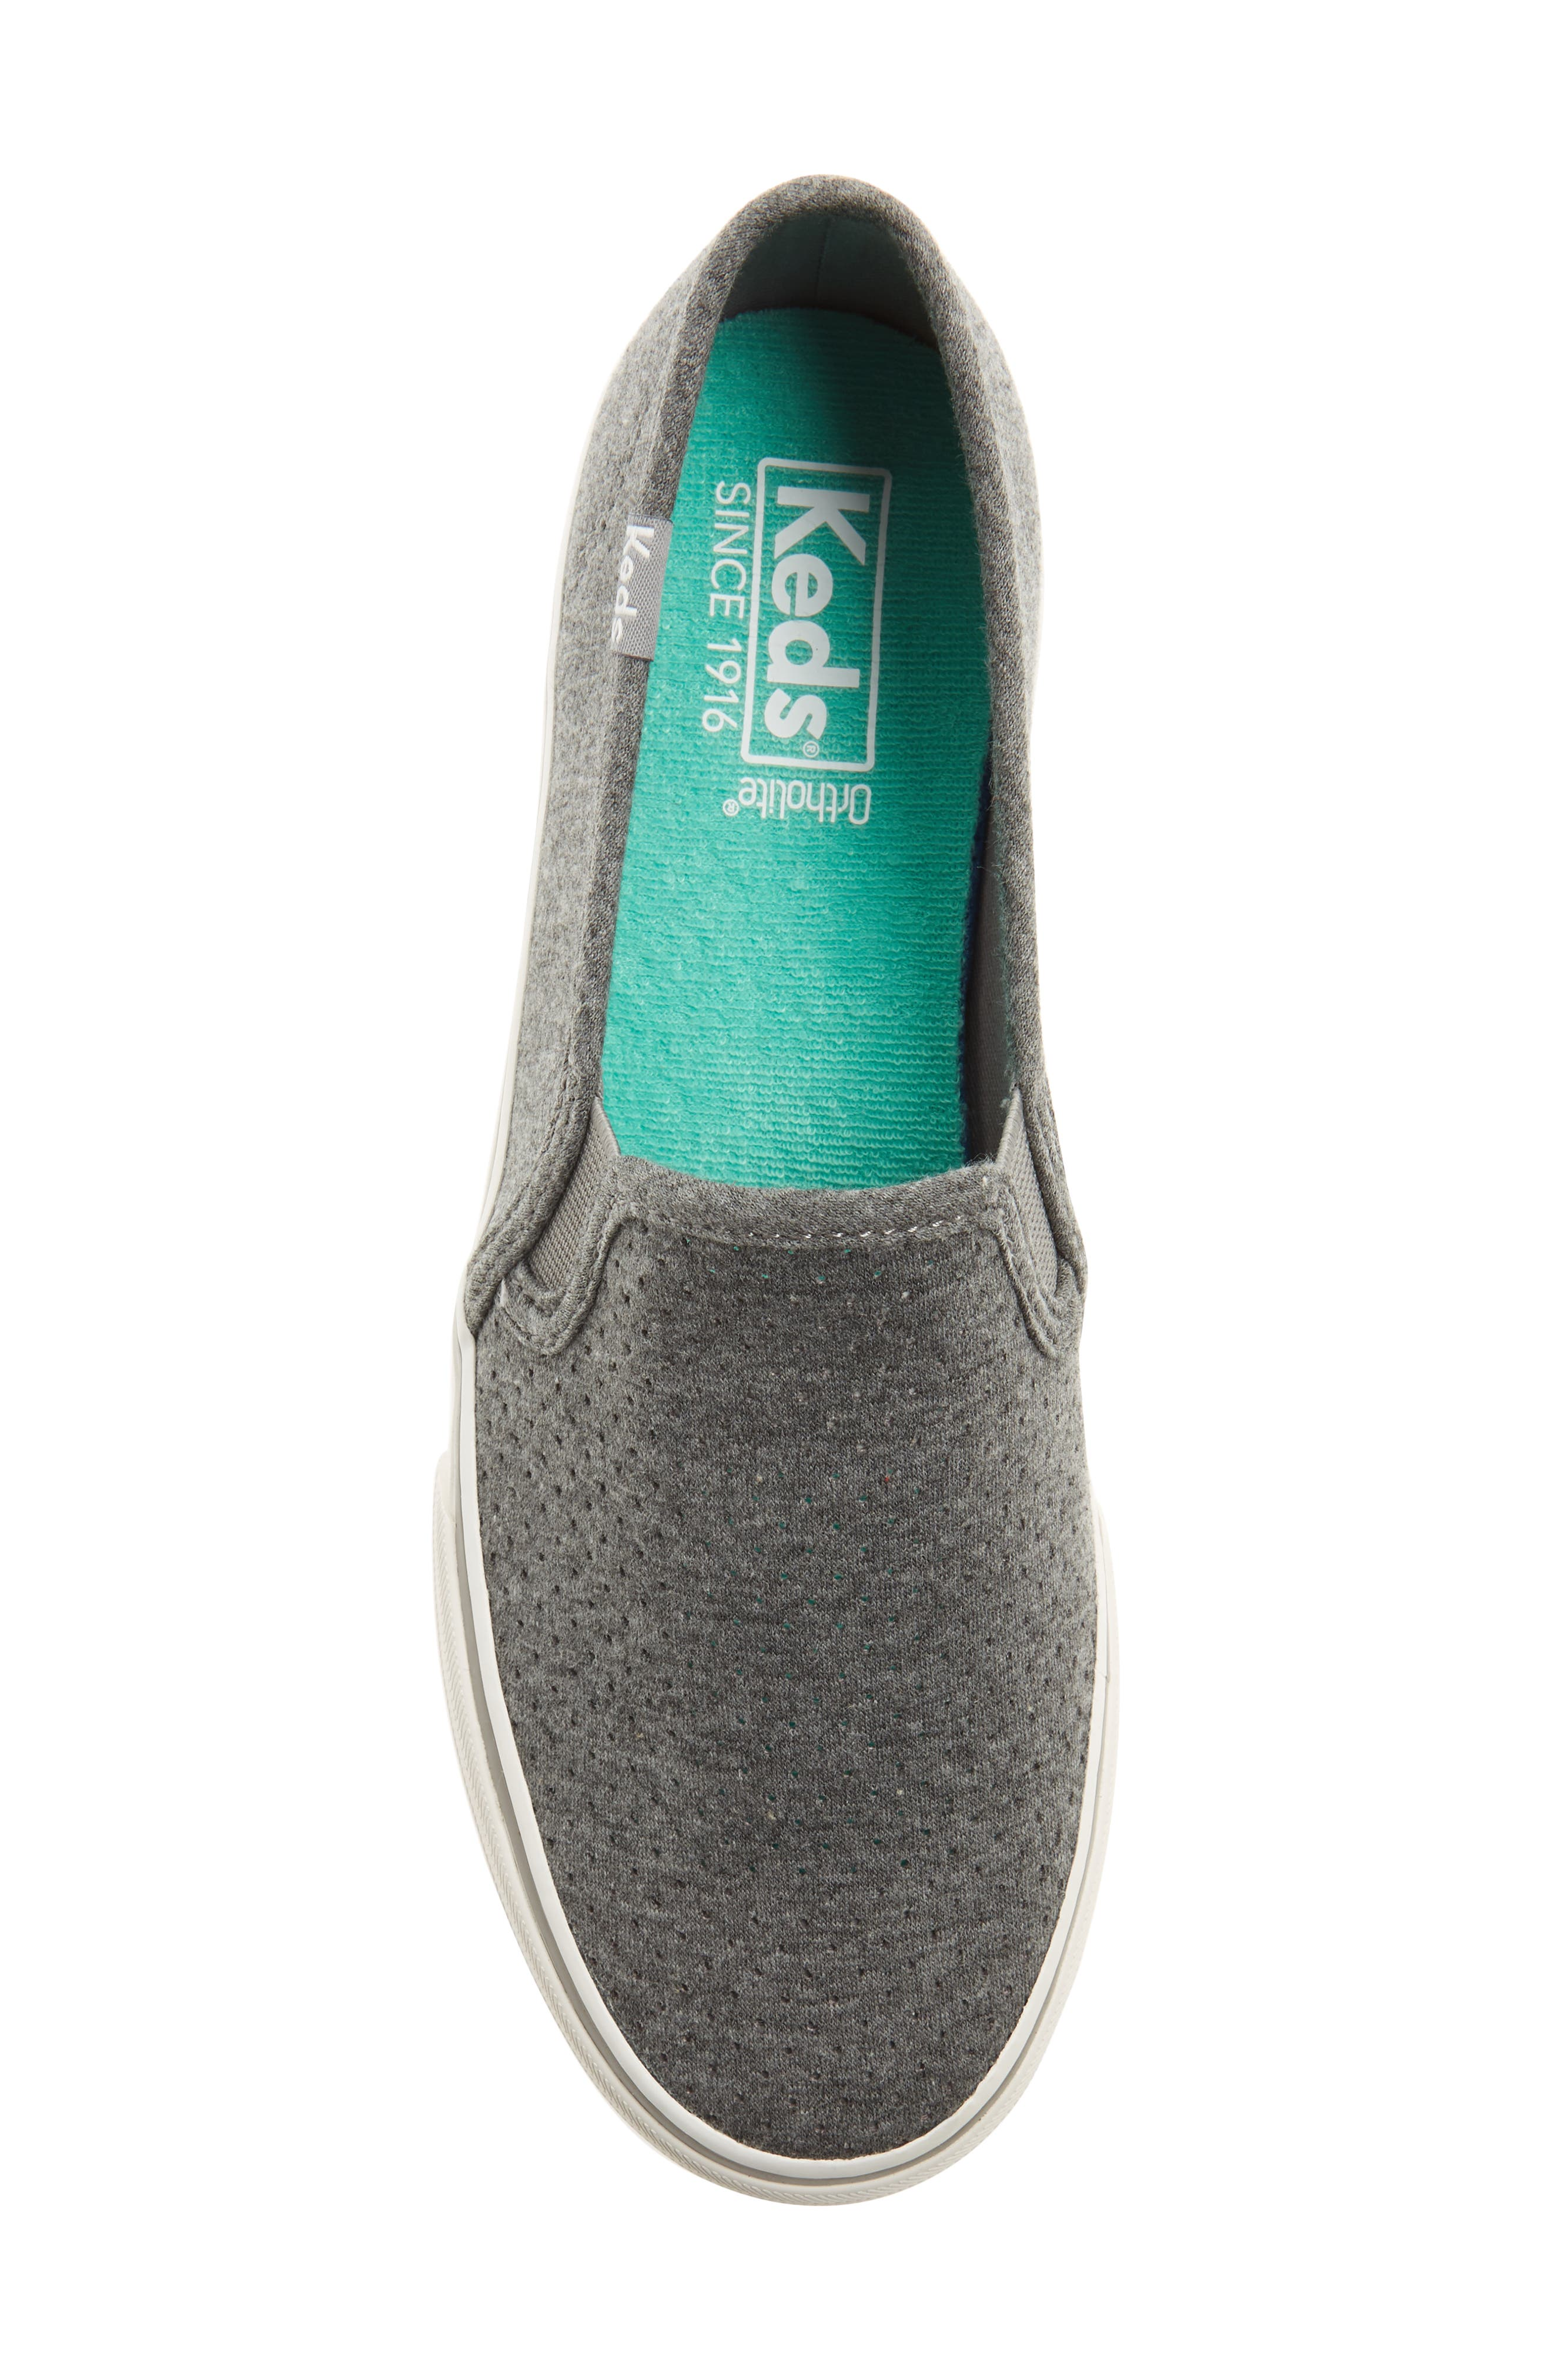 Double Decker Perforated Slip-On Sneaker,                             Alternate thumbnail 5, color,                             Charcoal